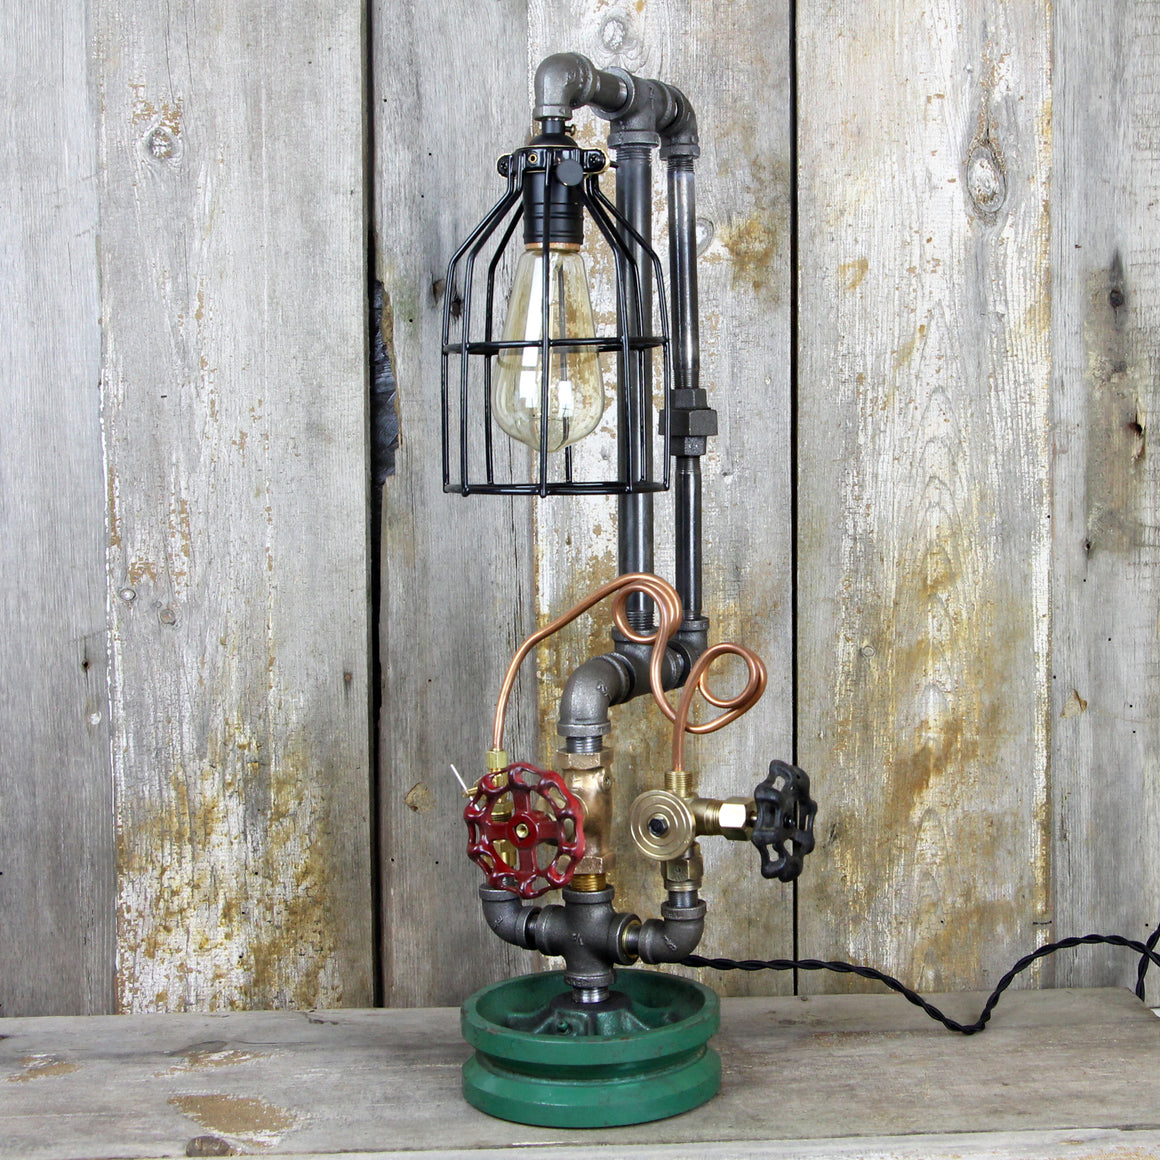 Industrial Steampunk Table Lamp #59 - The Lighting Works